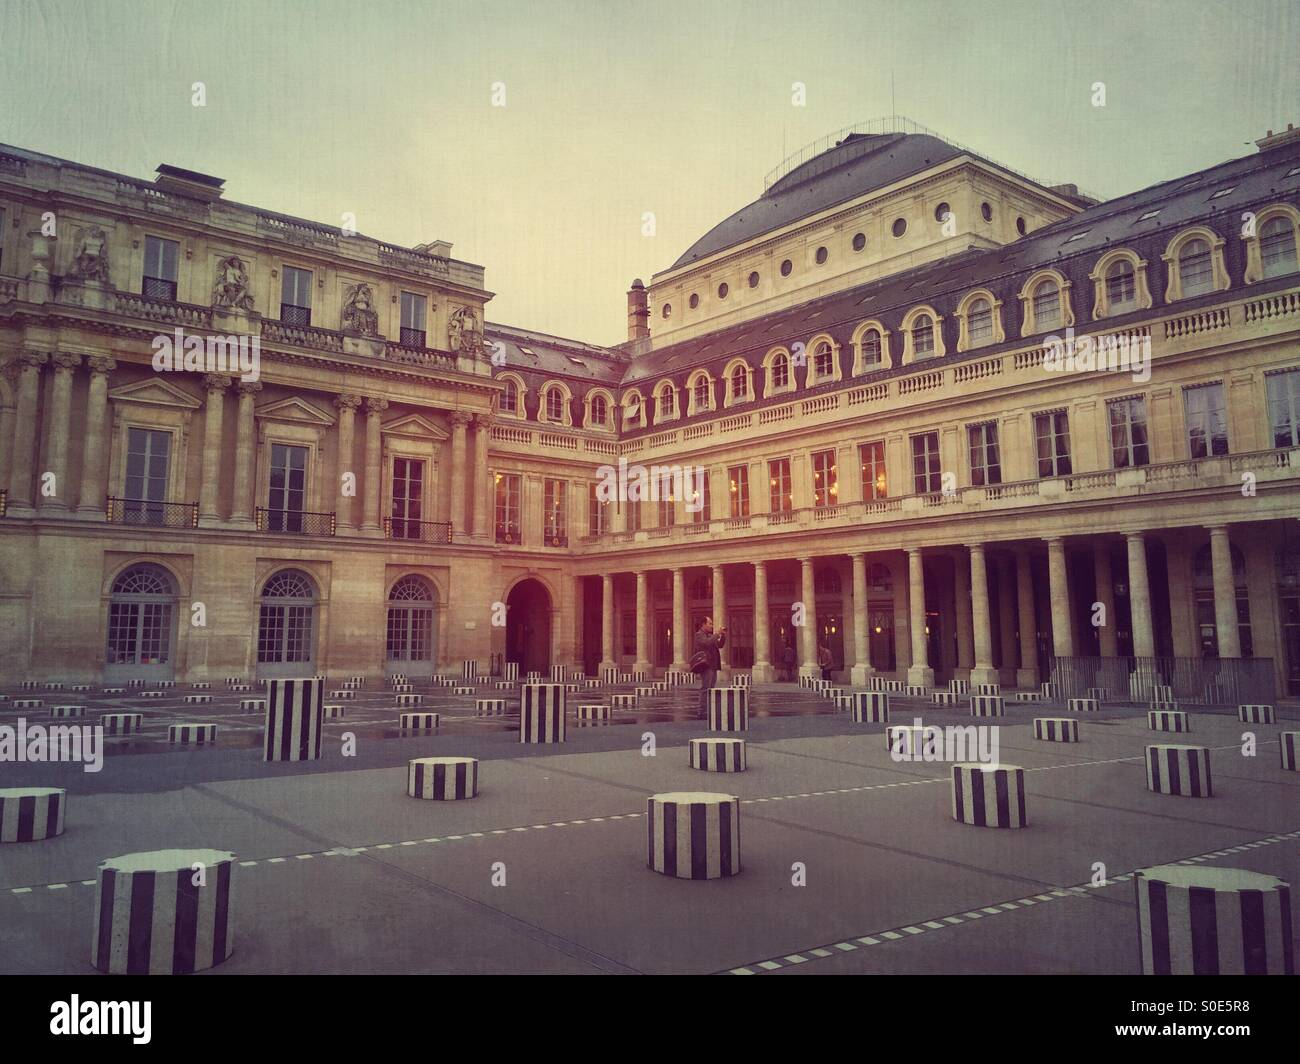 View of main courtyard at Place du Palais-Royal in Paris, France. Les Deux Plateaux installation by Daniel Buren Stock Photo